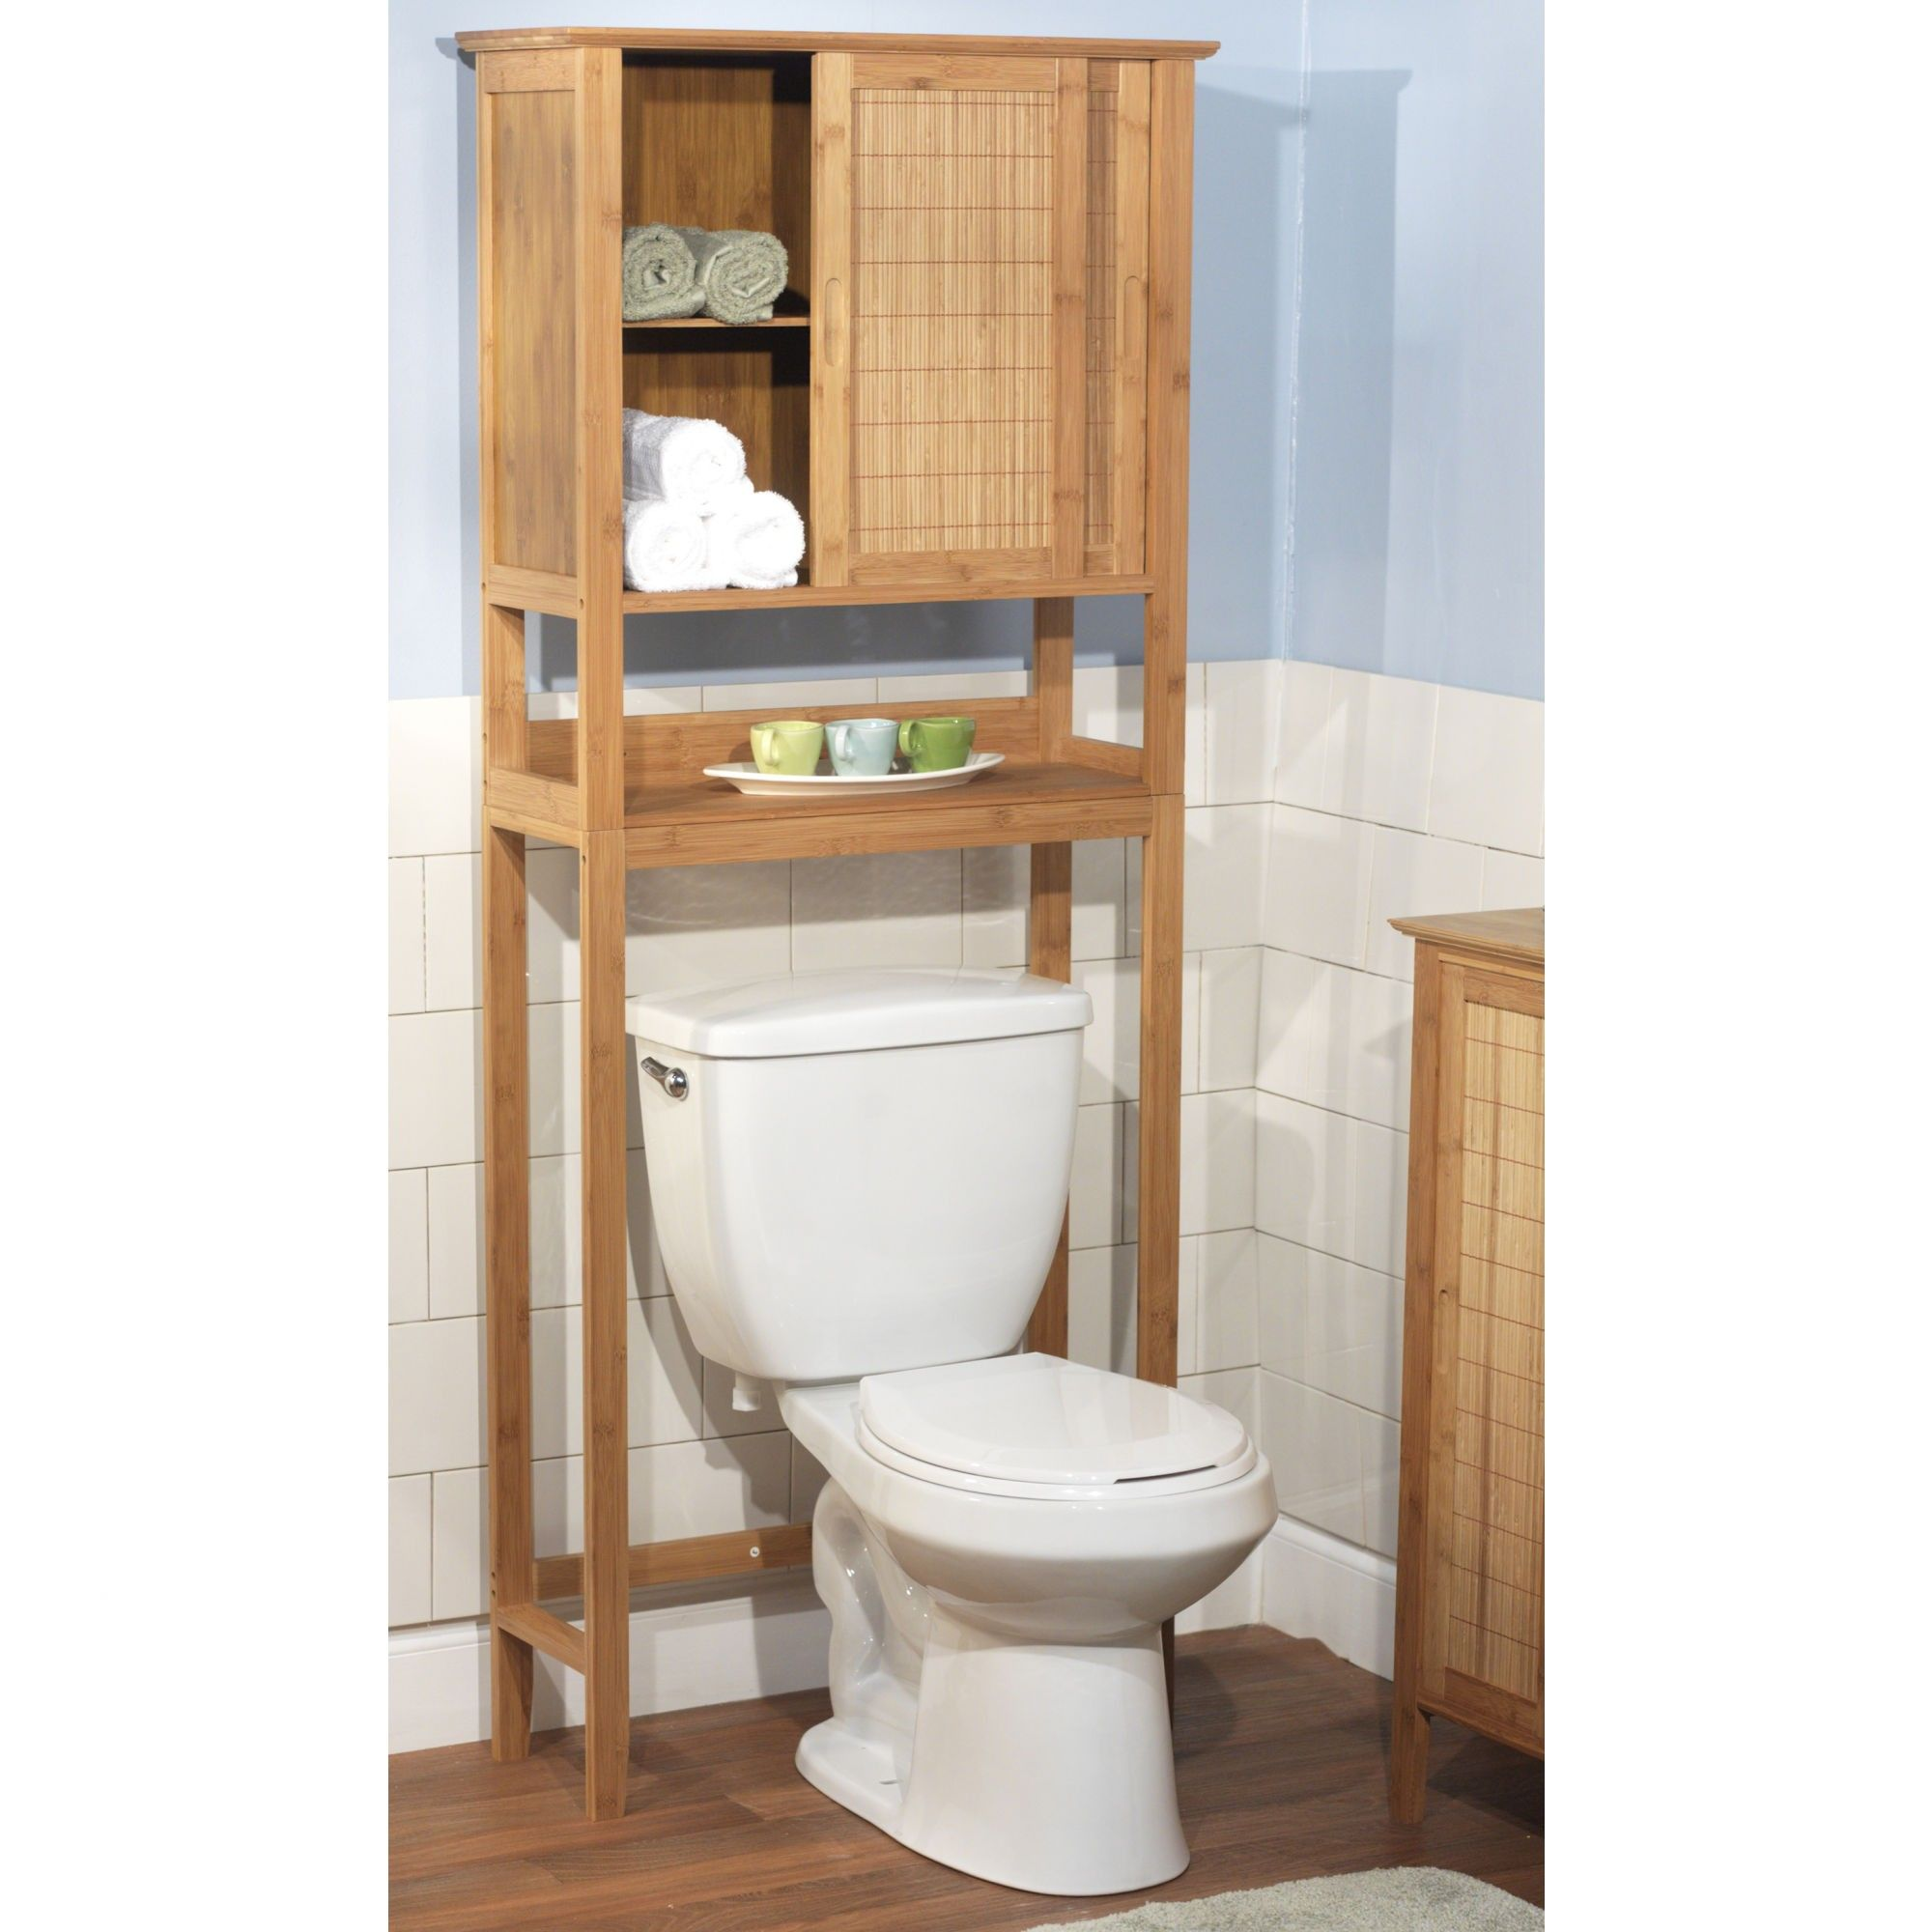 toilet behind interesting spacesaver saver to over etagere space oak shelves the design for bathroom storage your savers